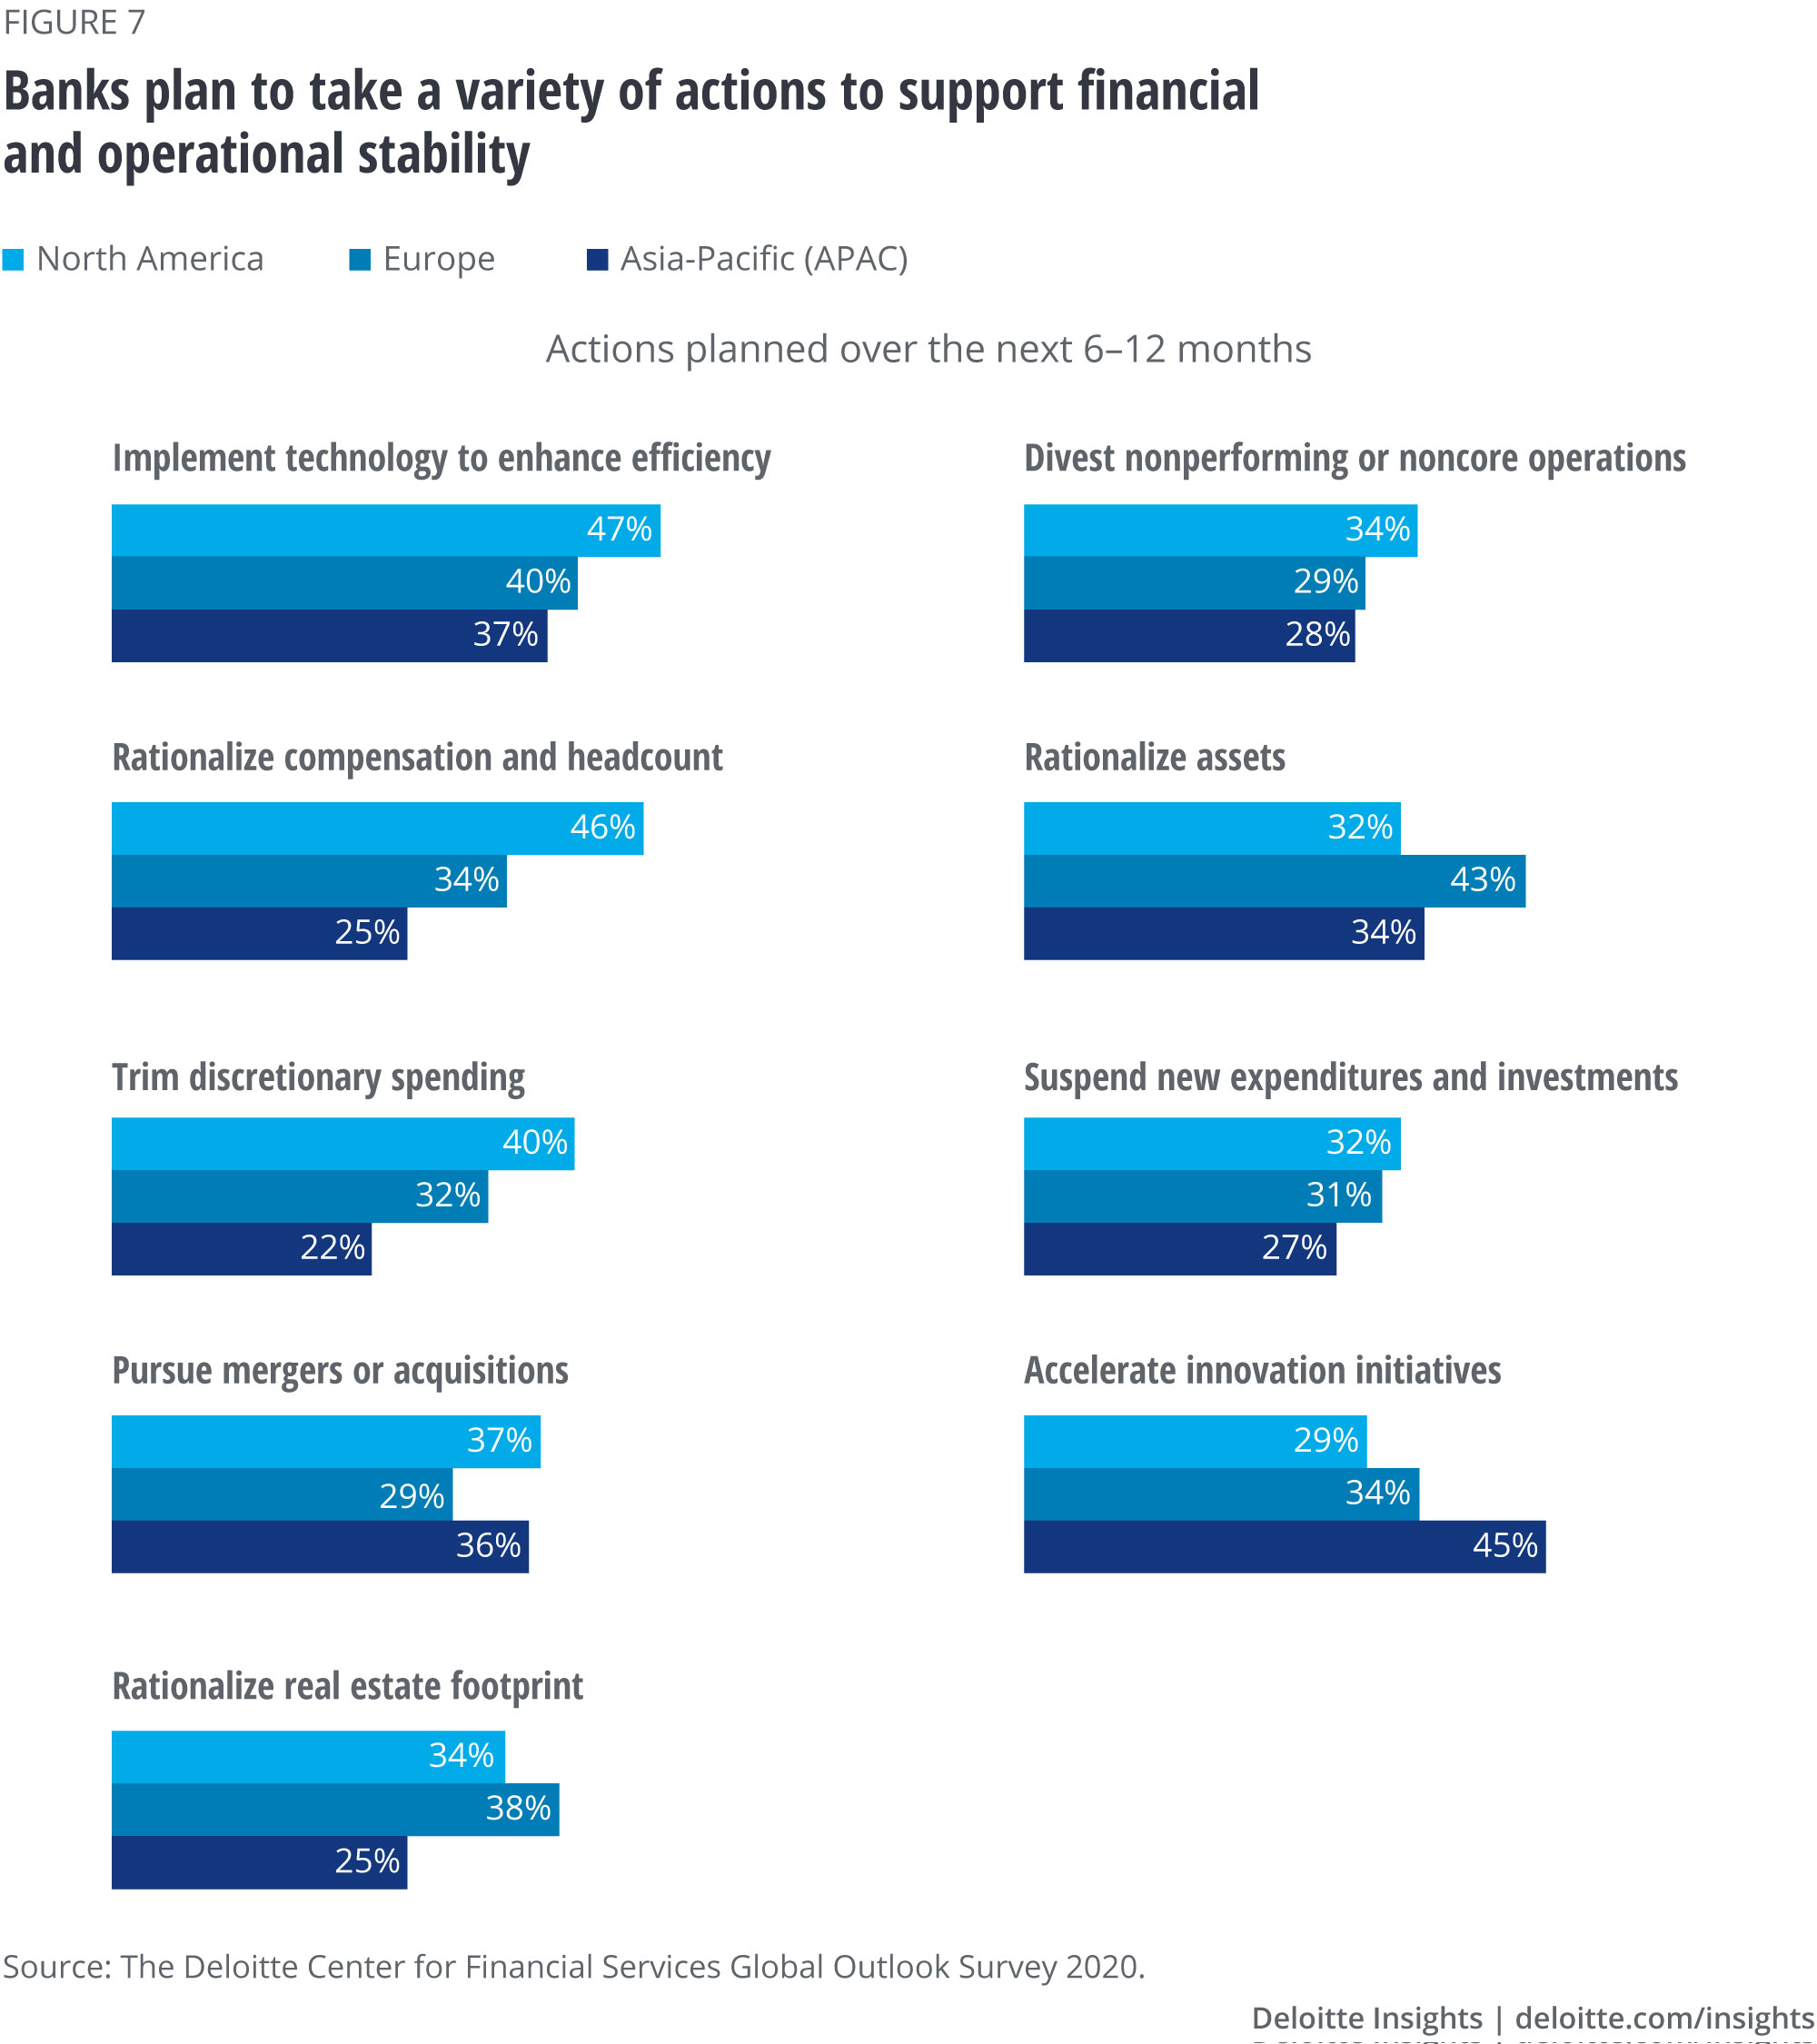 Actions surveyed organizations are likely to take to support financial and operational stability over the next six to 12 months